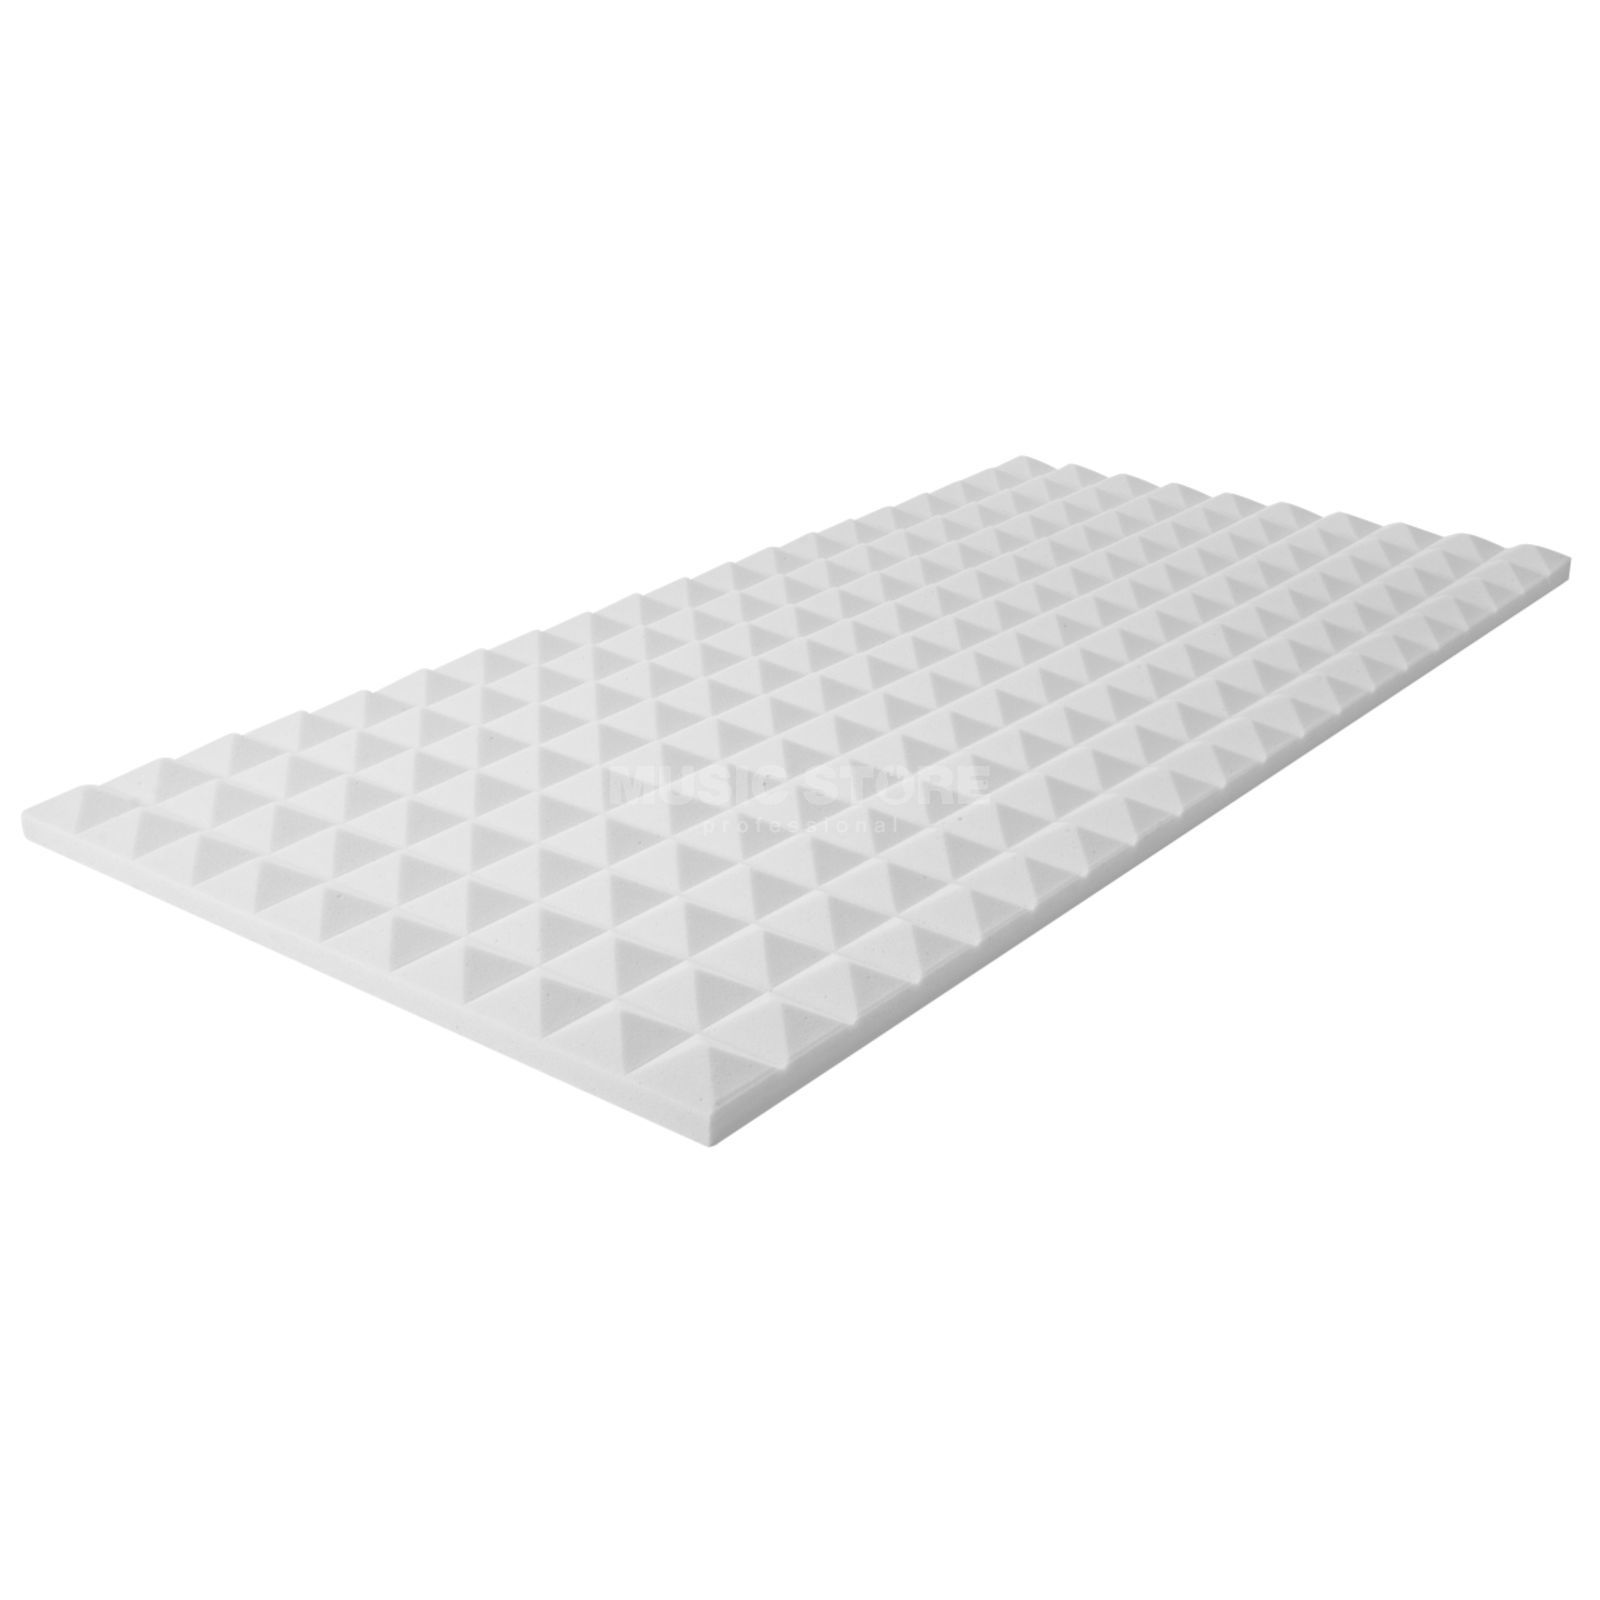 MUSIC STORE Pyramis Acoustic Foam 30 white 100x50cm,3cm,Basotect,adhesive Product Image